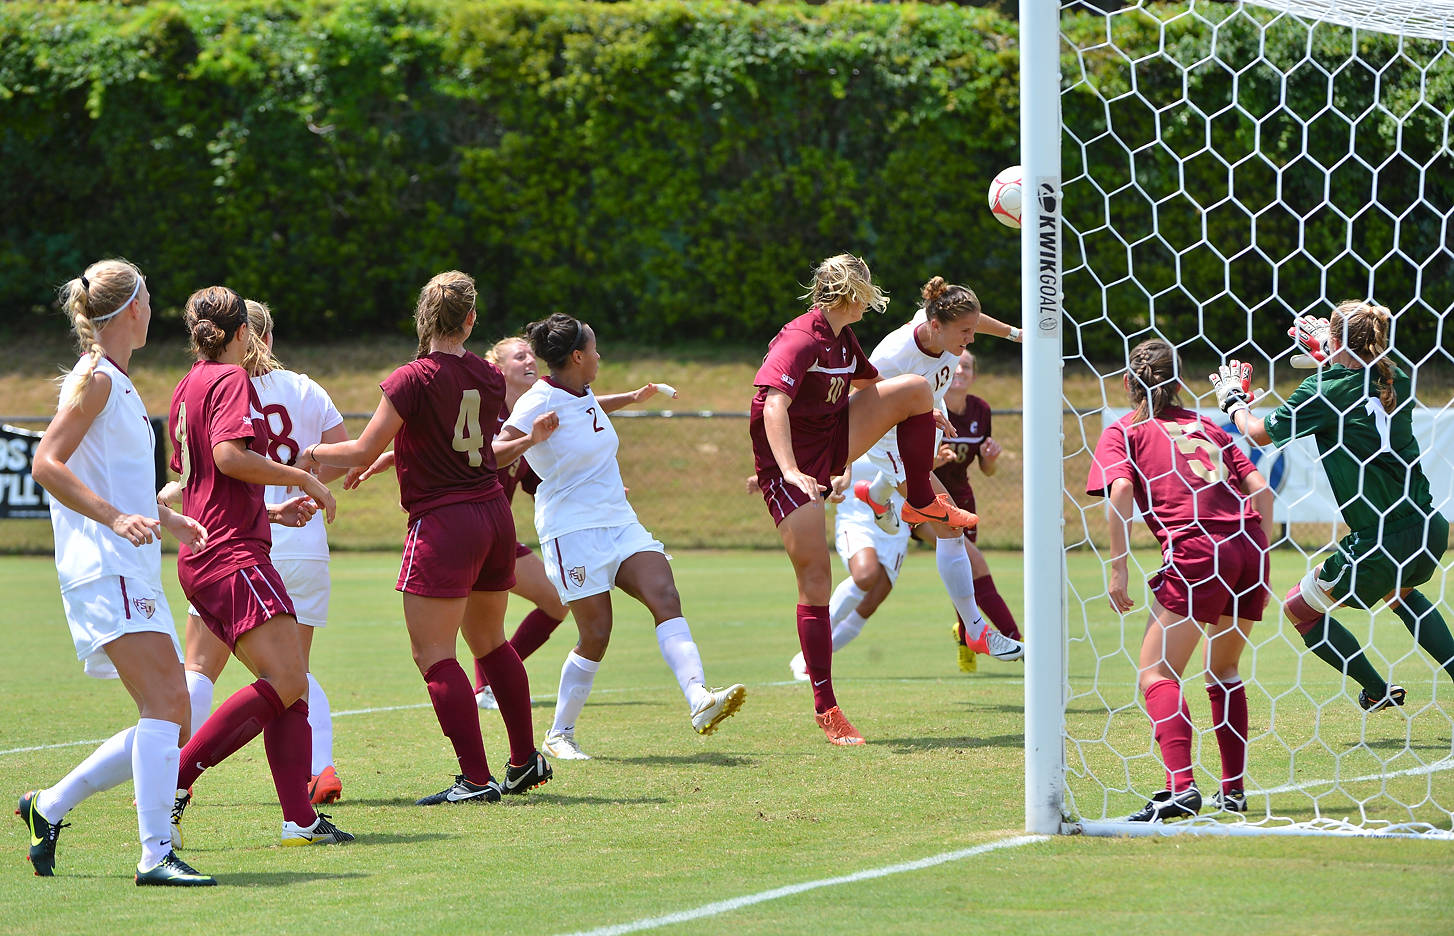 Kristin Grubka flies in for the header off the corner to score the first goal of the game in the 42nd minute.